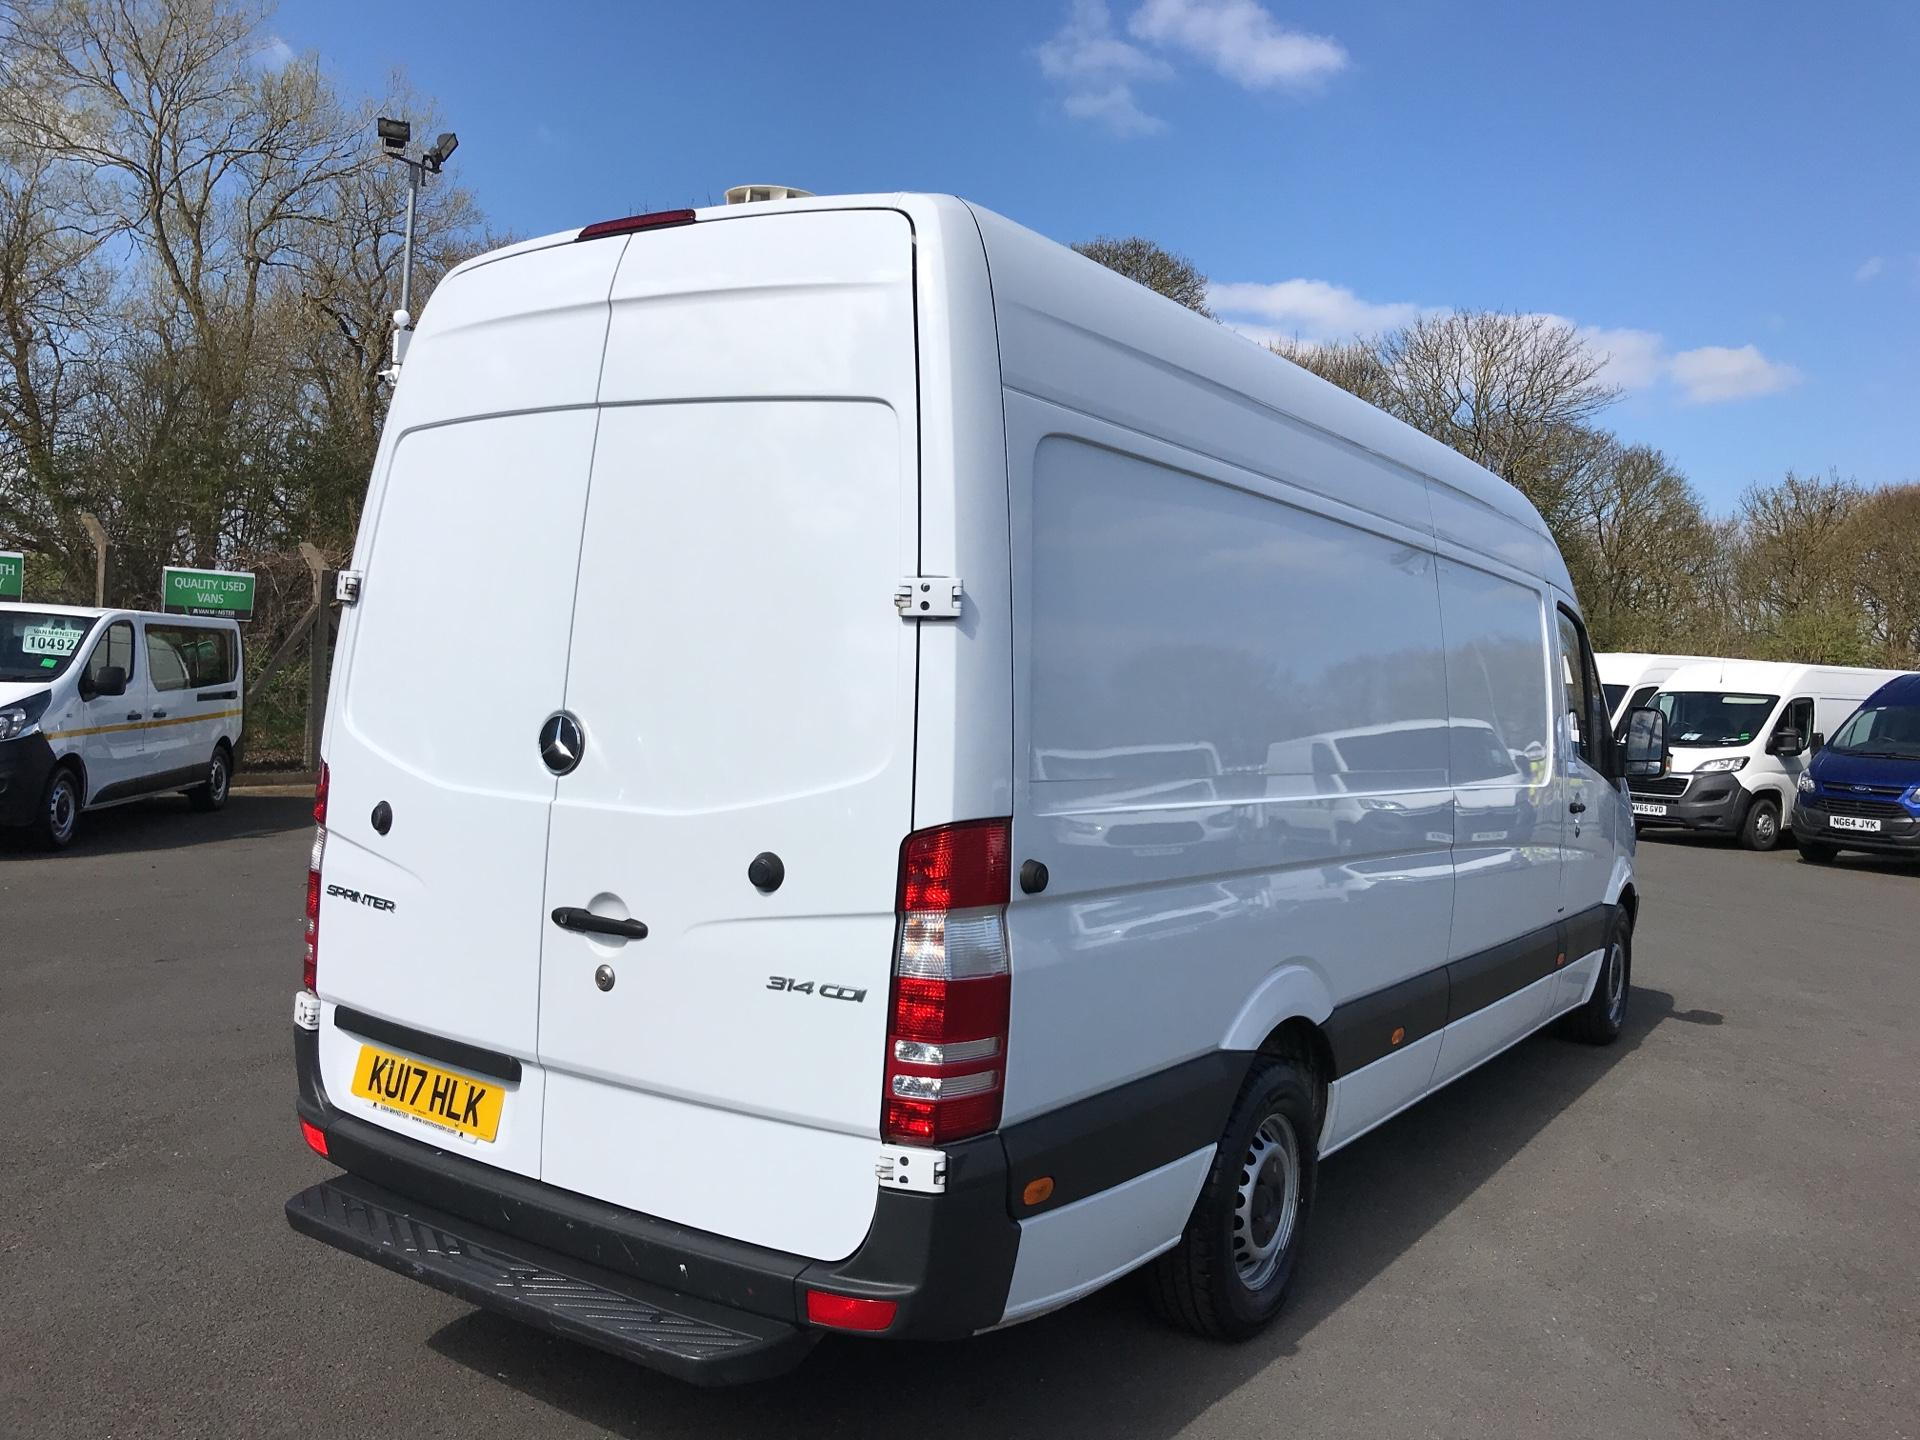 2017 Mercedes-Benz Sprinter  314CDI LWB HIGH ROOF 140PS EURO 6 (KU17HLK) Thumbnail 3